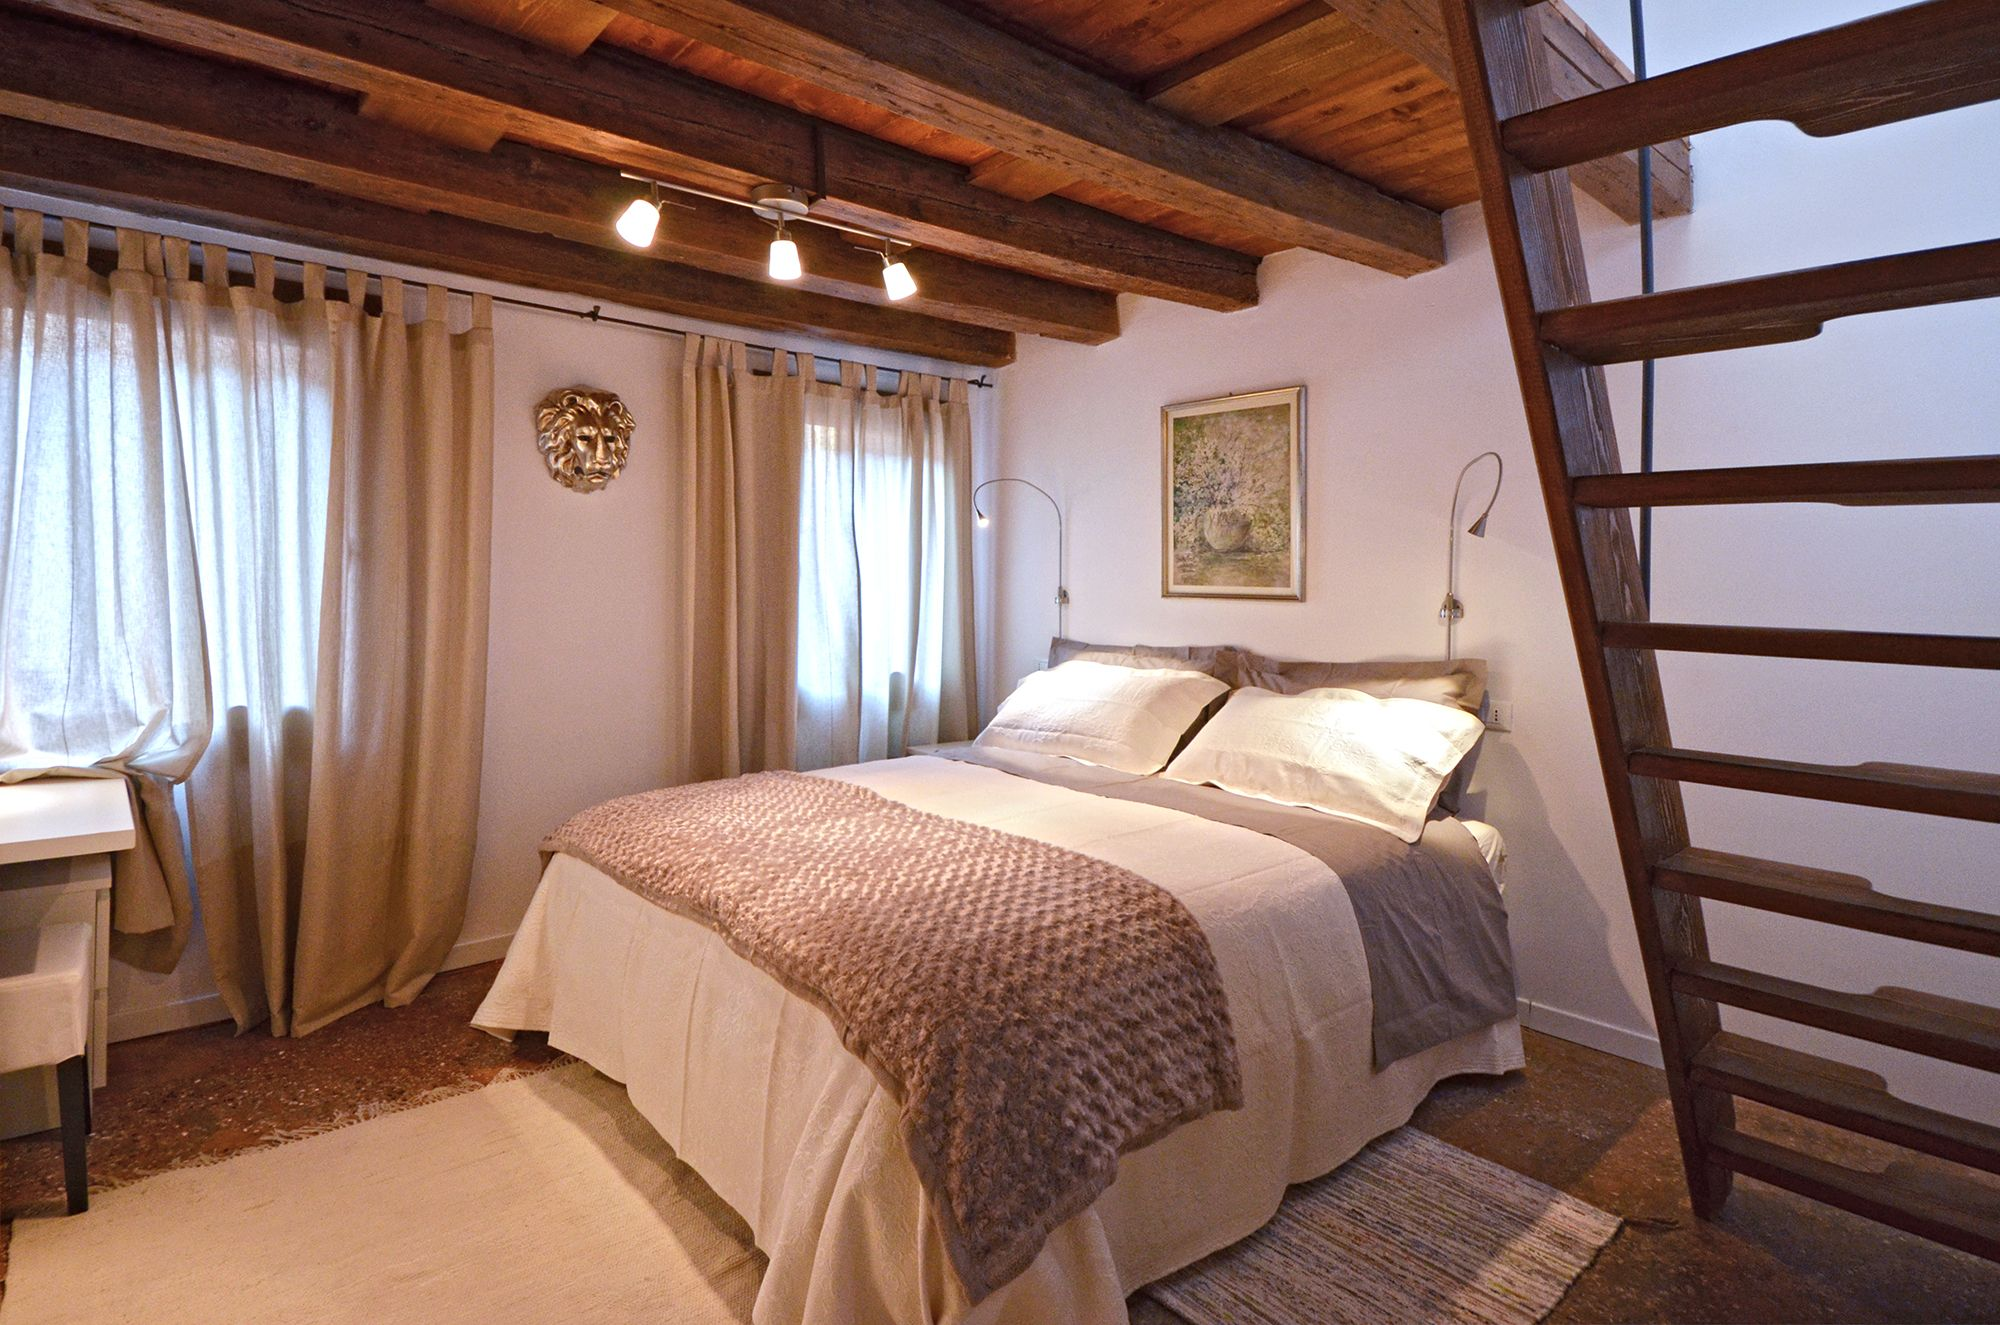 the double bedroom has plenty of wardrobe space and a staircase to the attic